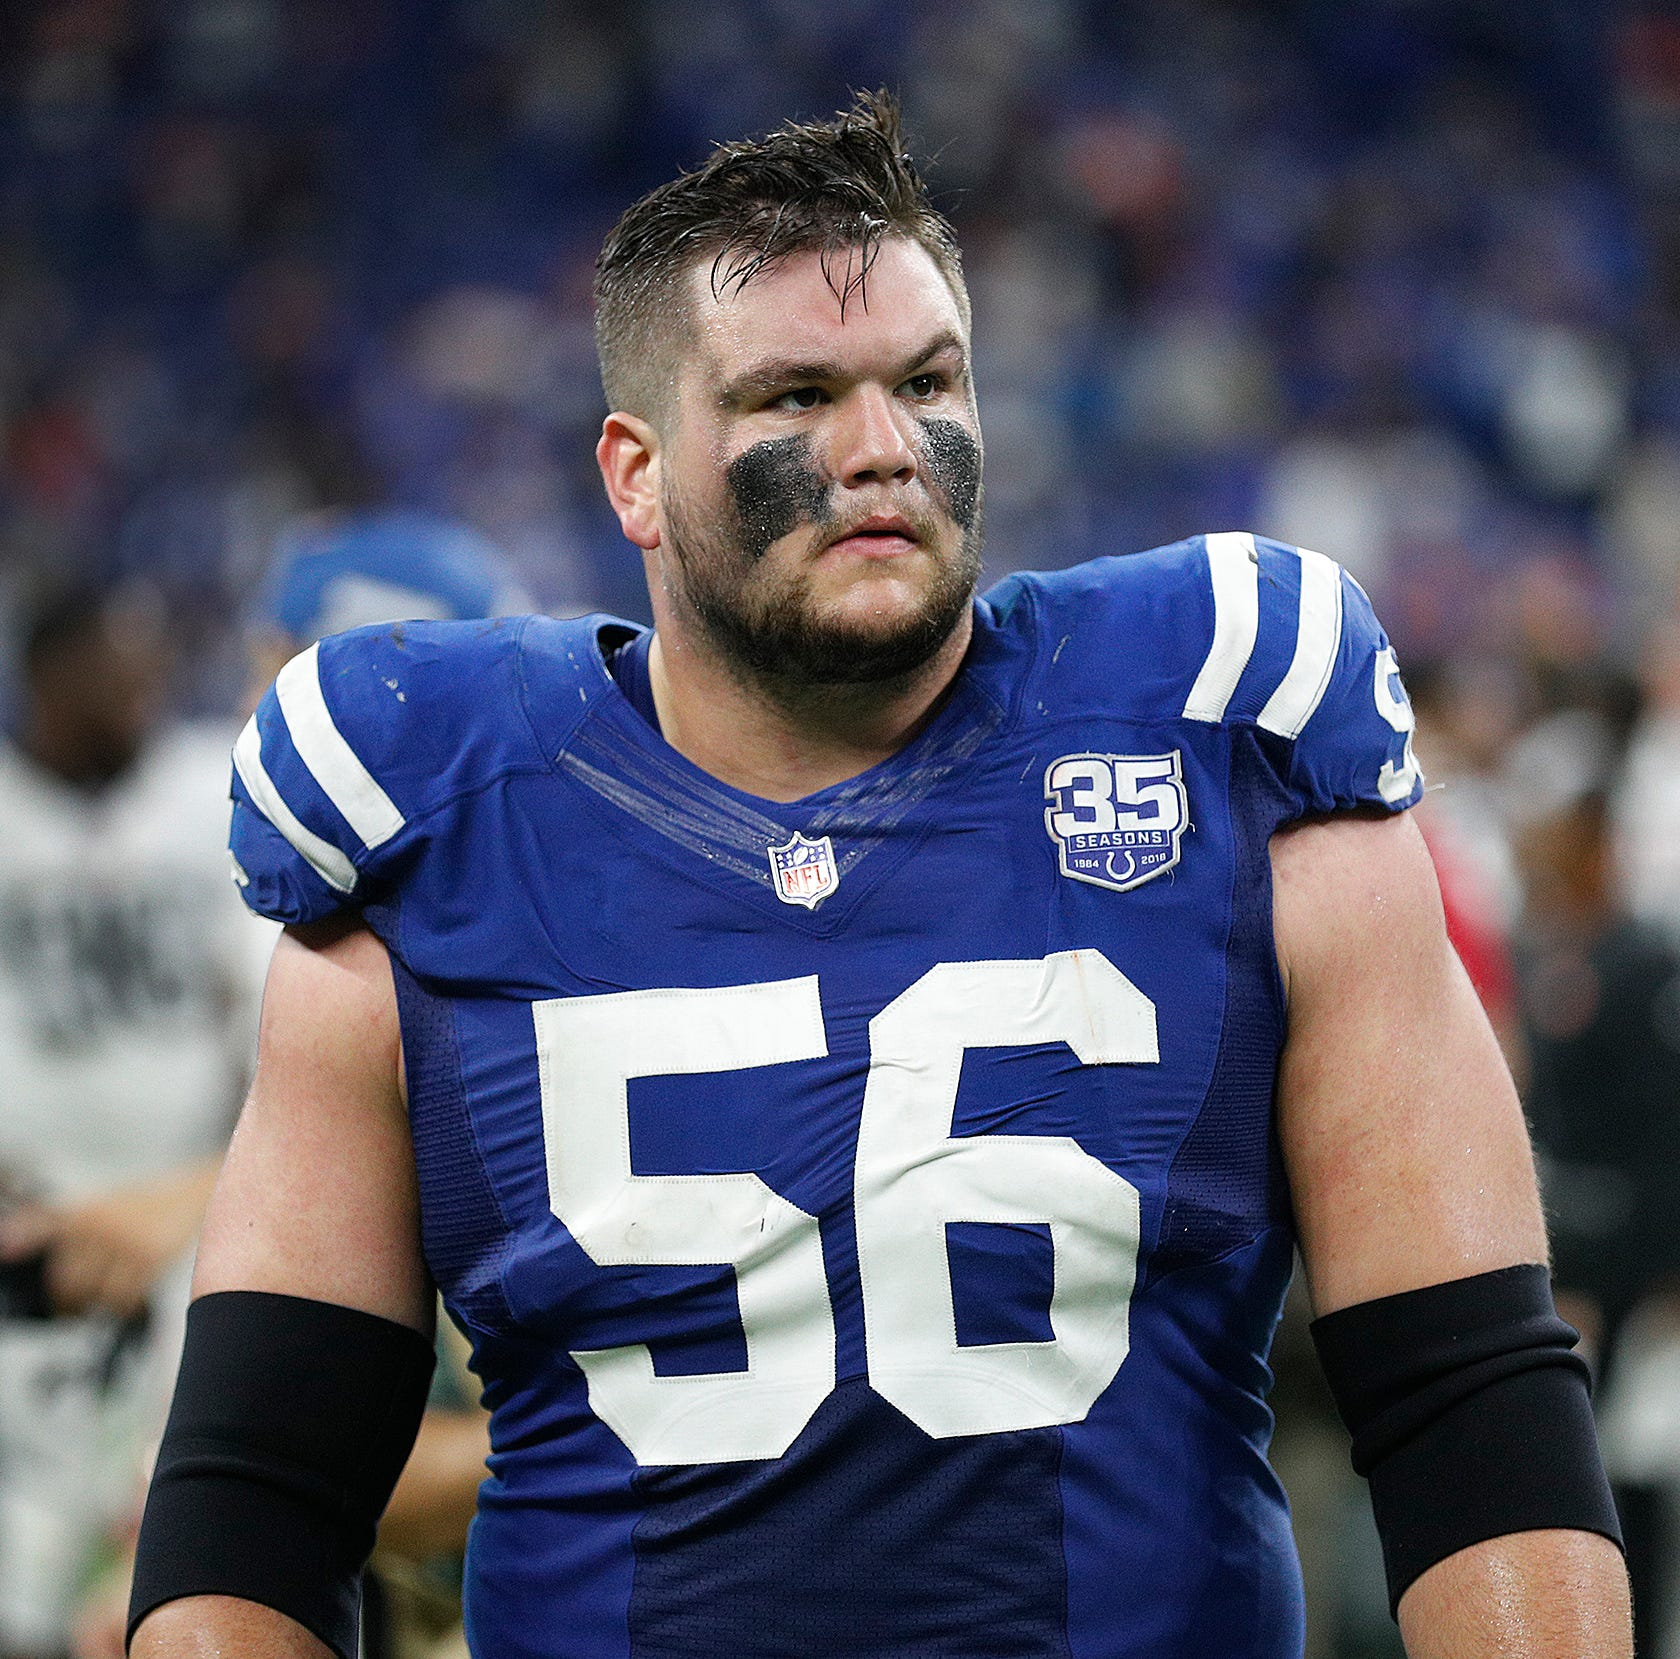 Colts guard Quenton Nelson fined $26,739 for hit during screaming video clip